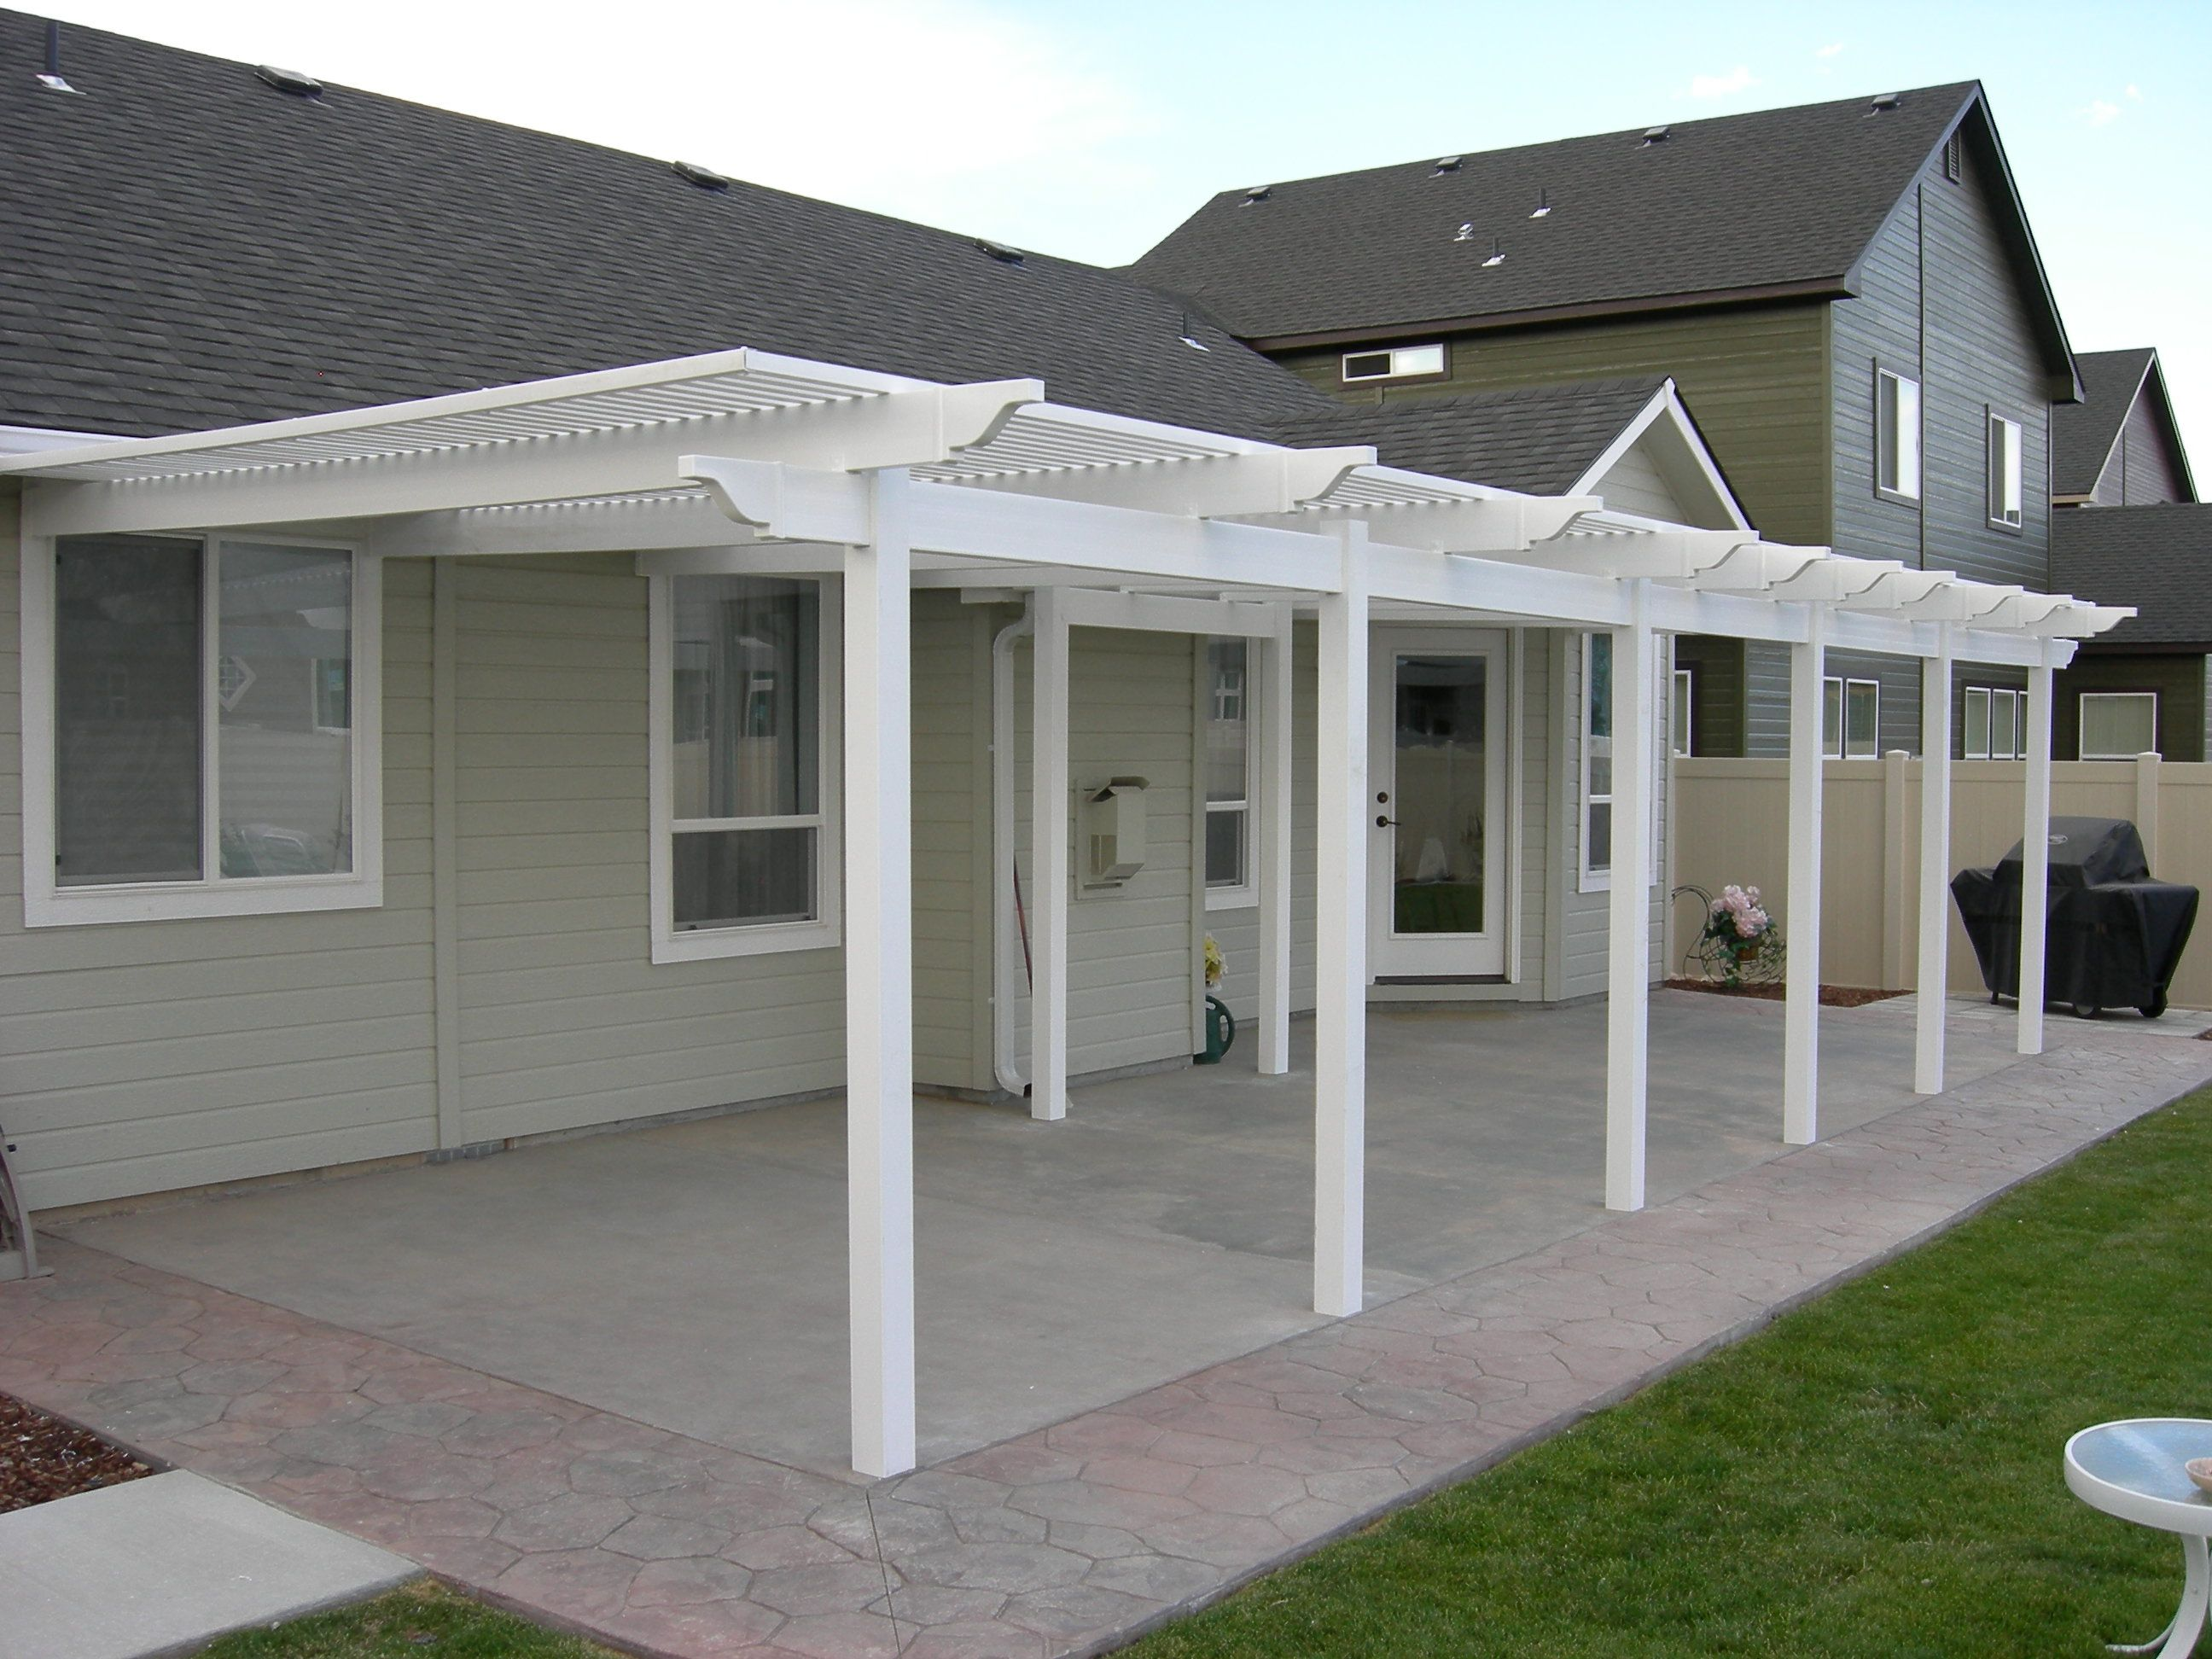 Patio pictures patio covers white ideas for the for Small patio shade ideas